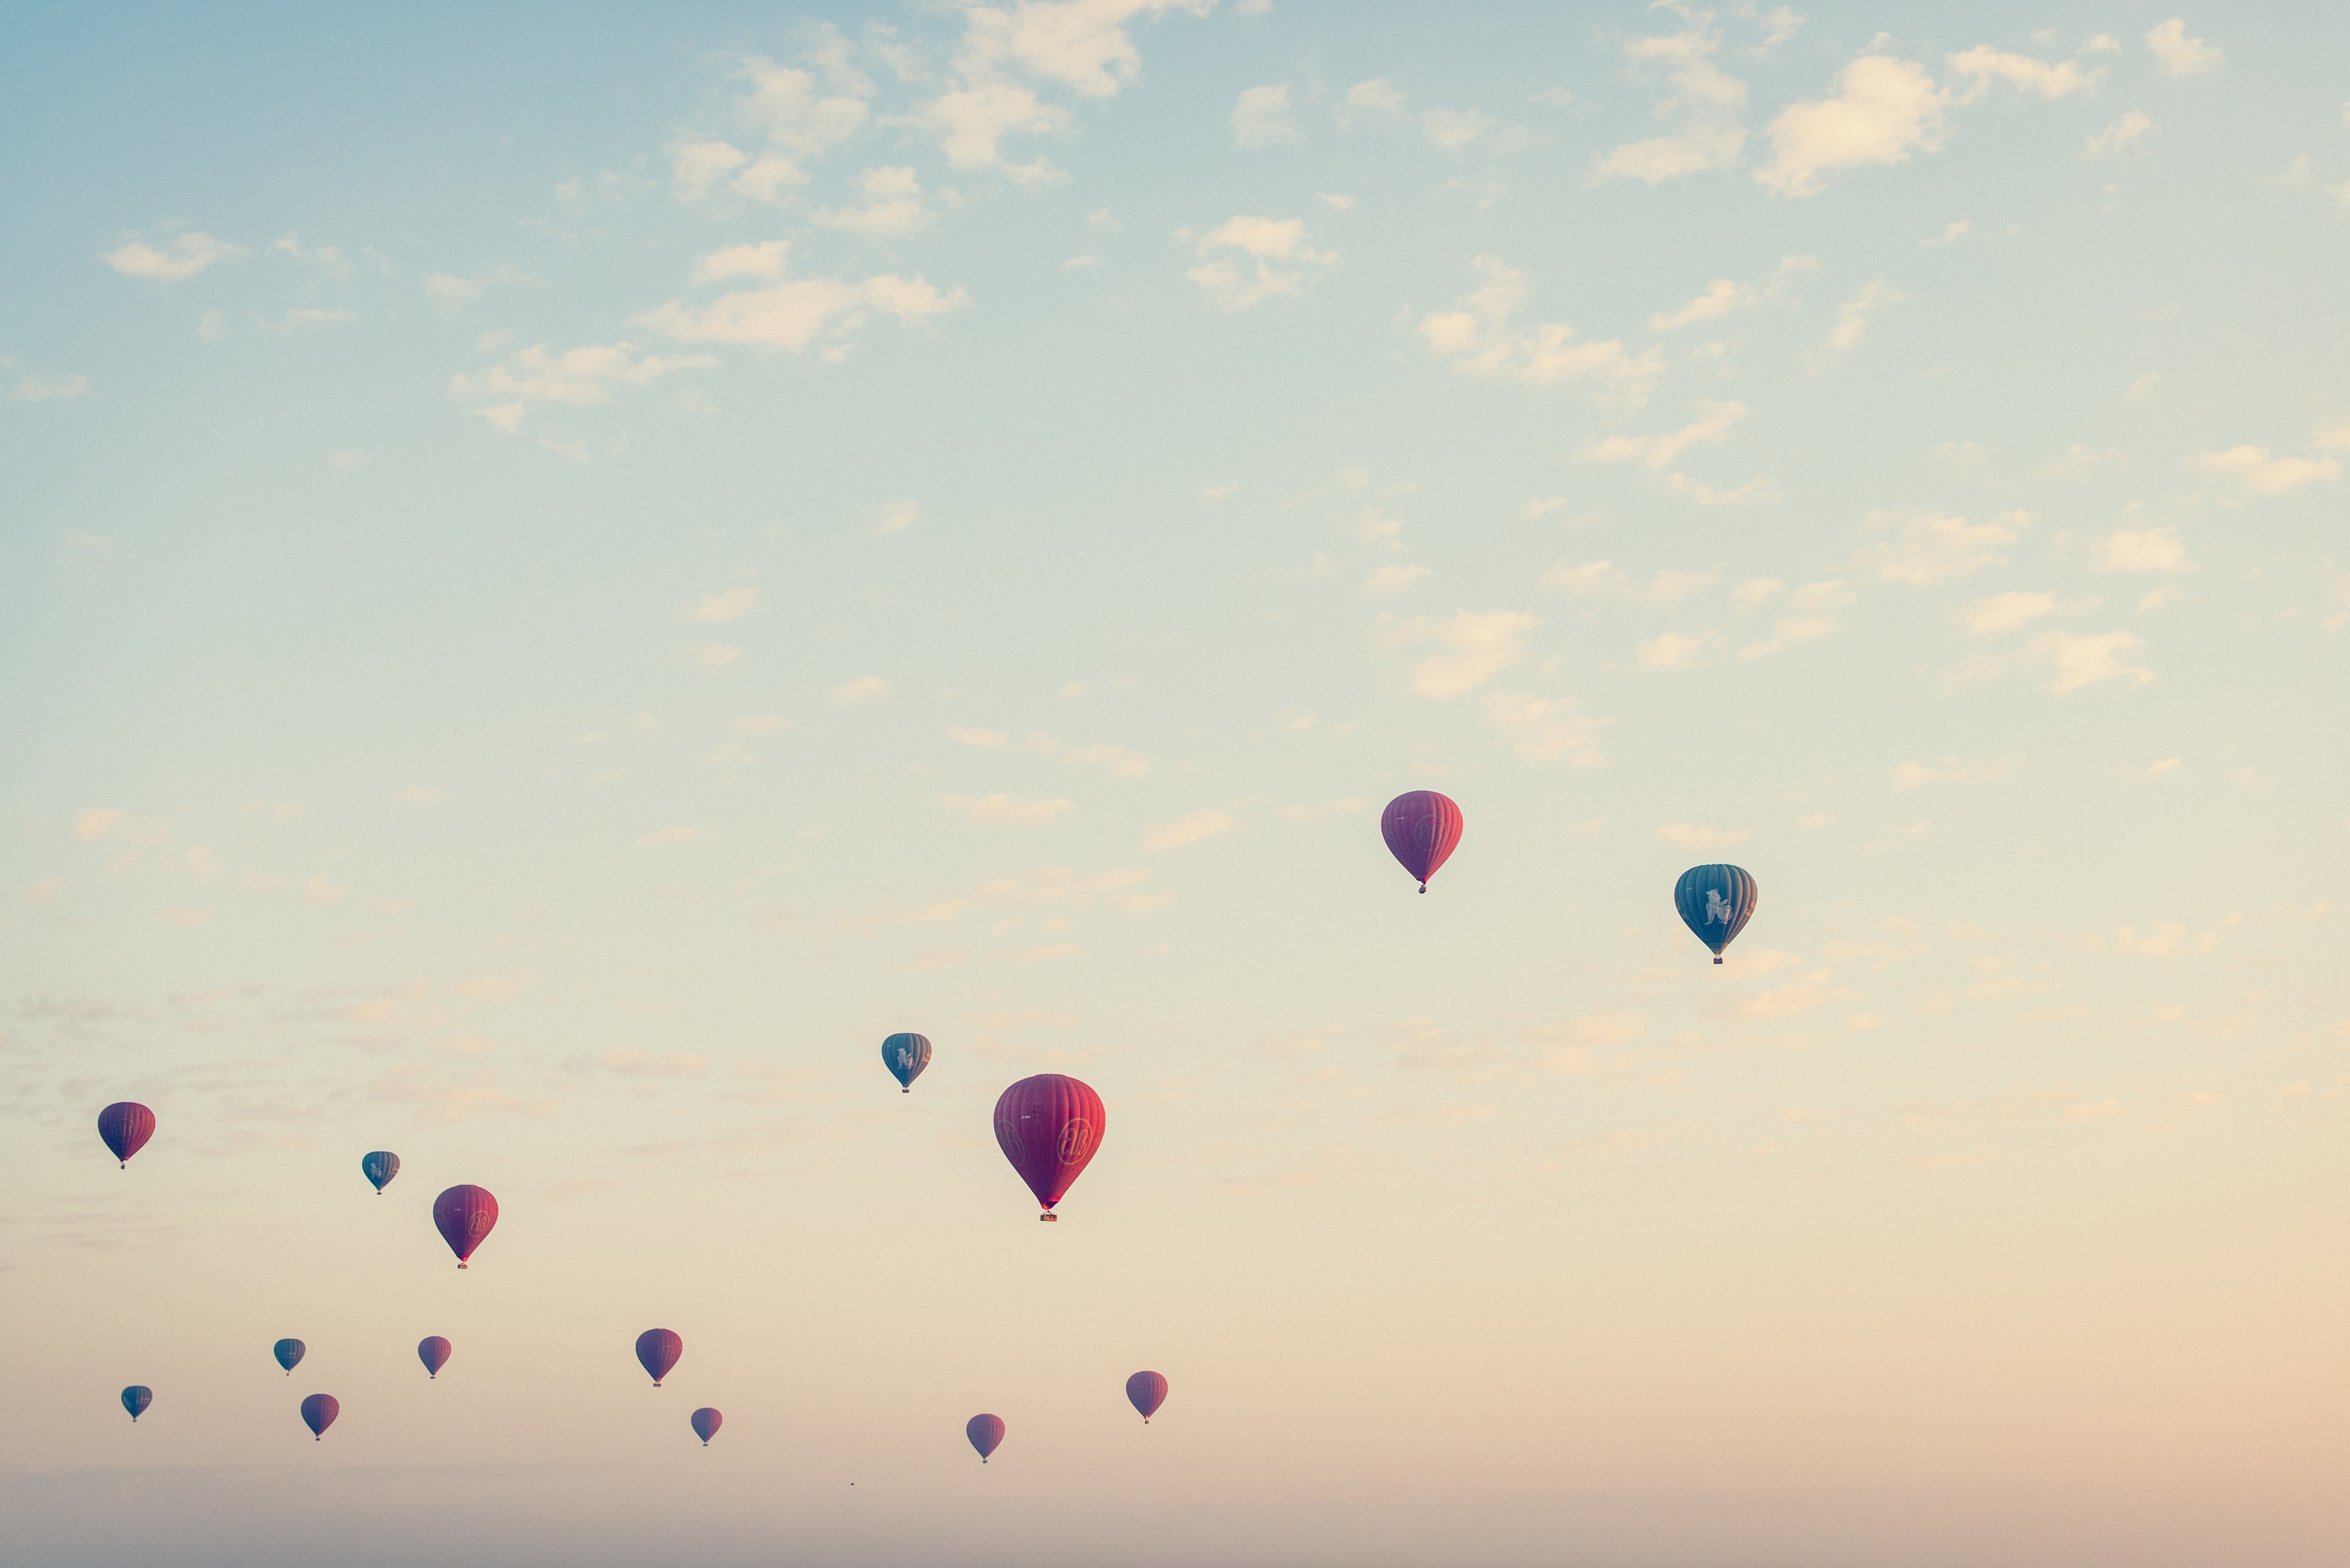 Several hot air balloons with different colors flying into the sky in old began.